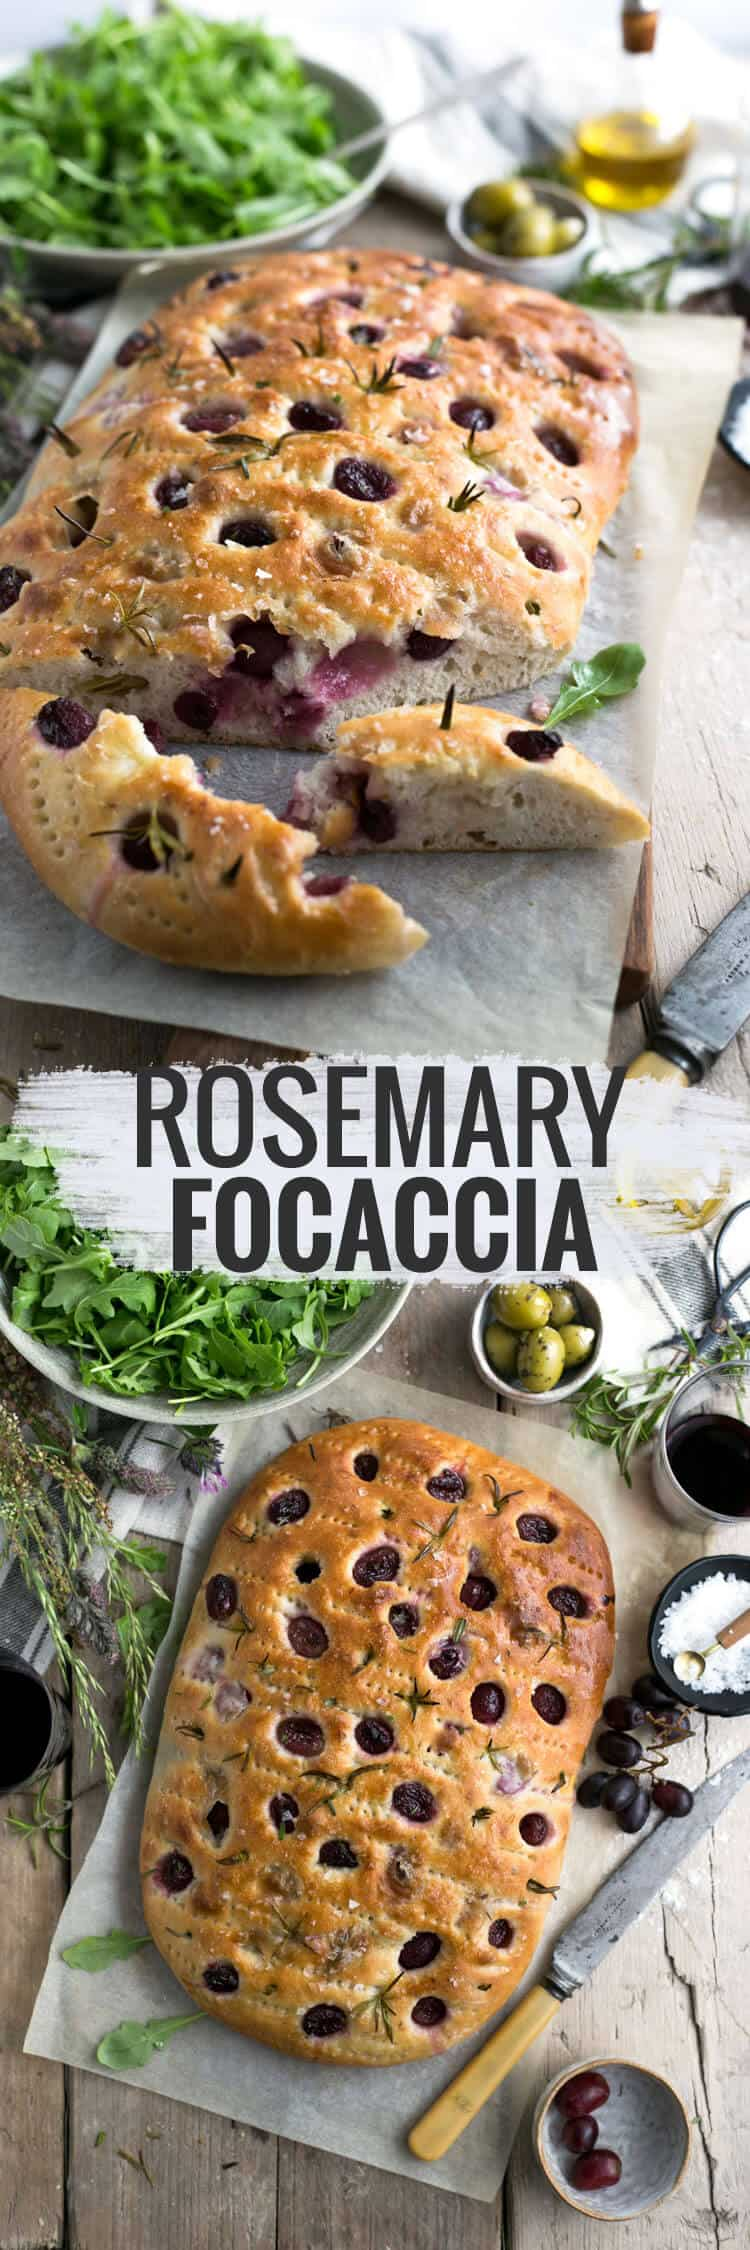 Traditional rosemary focaccia with red grapes, sea salt and olive oil | via @annabanana.co